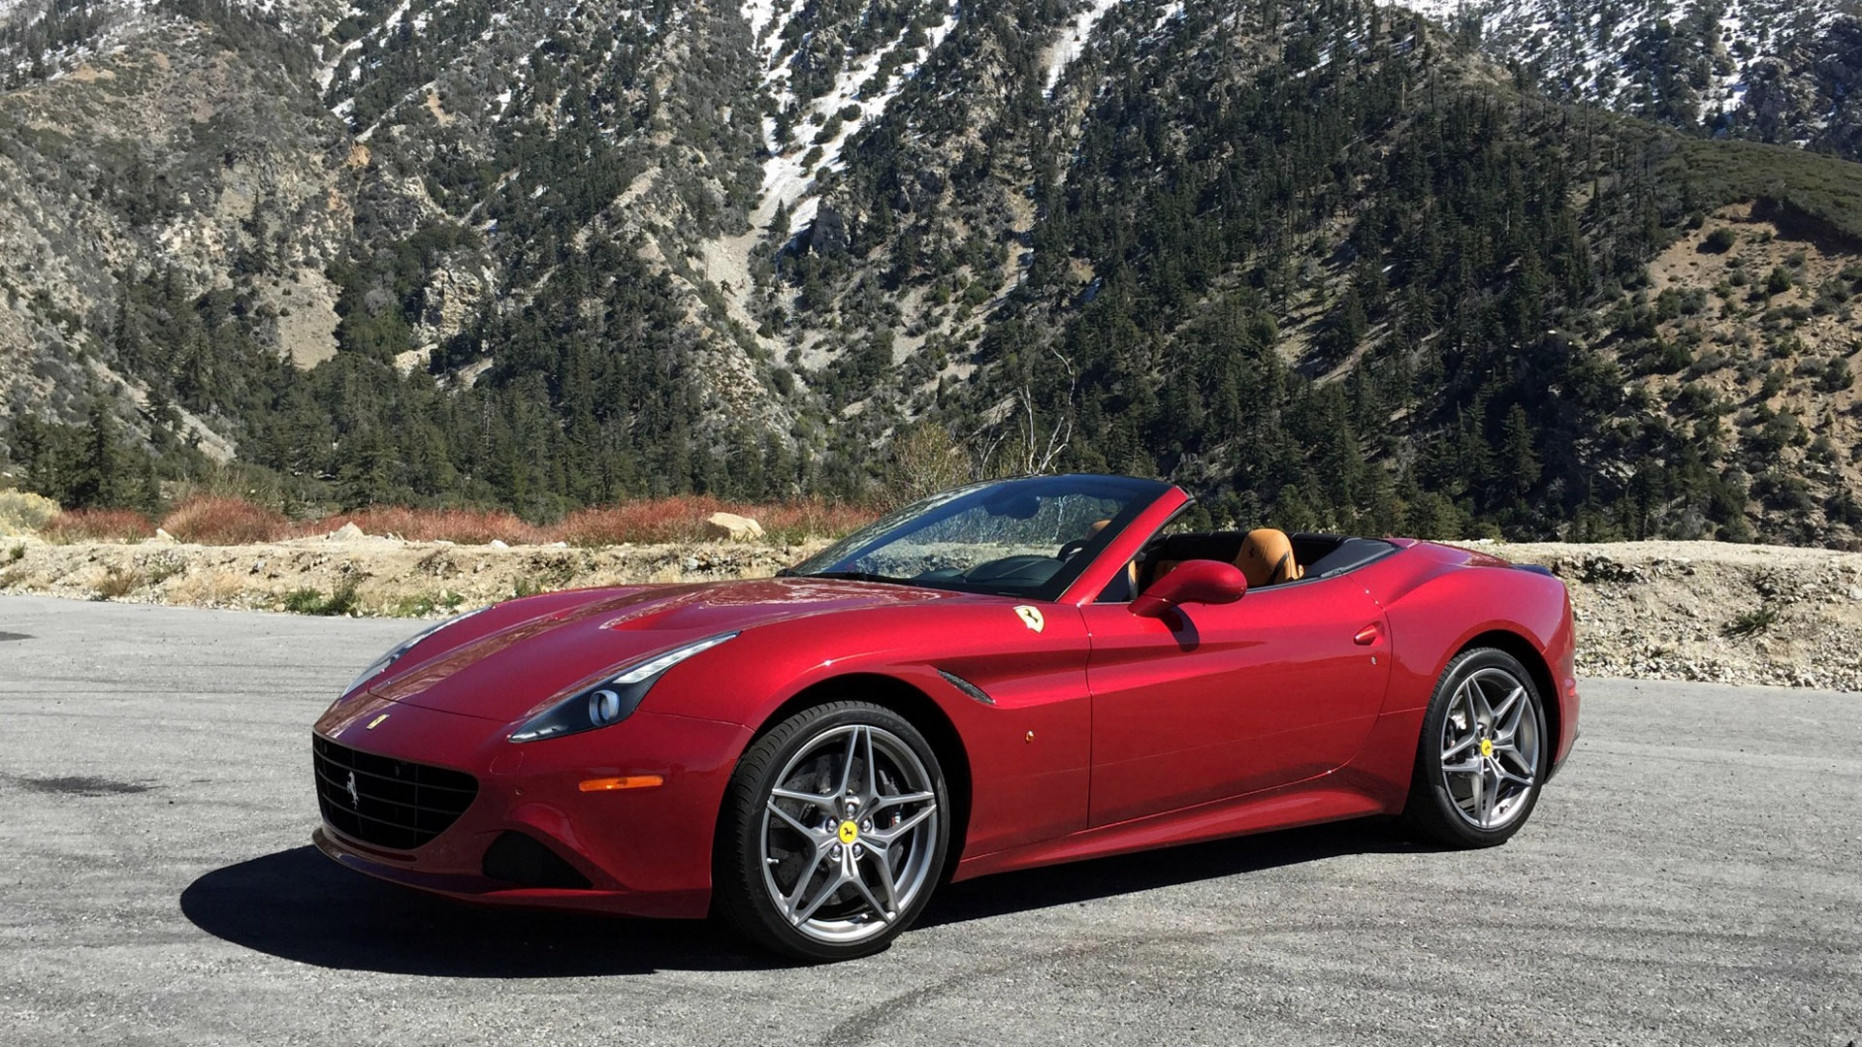 New 8 Ferrari California T For Sale () | Miller Motorcars - 2020 ferrari california t for sale